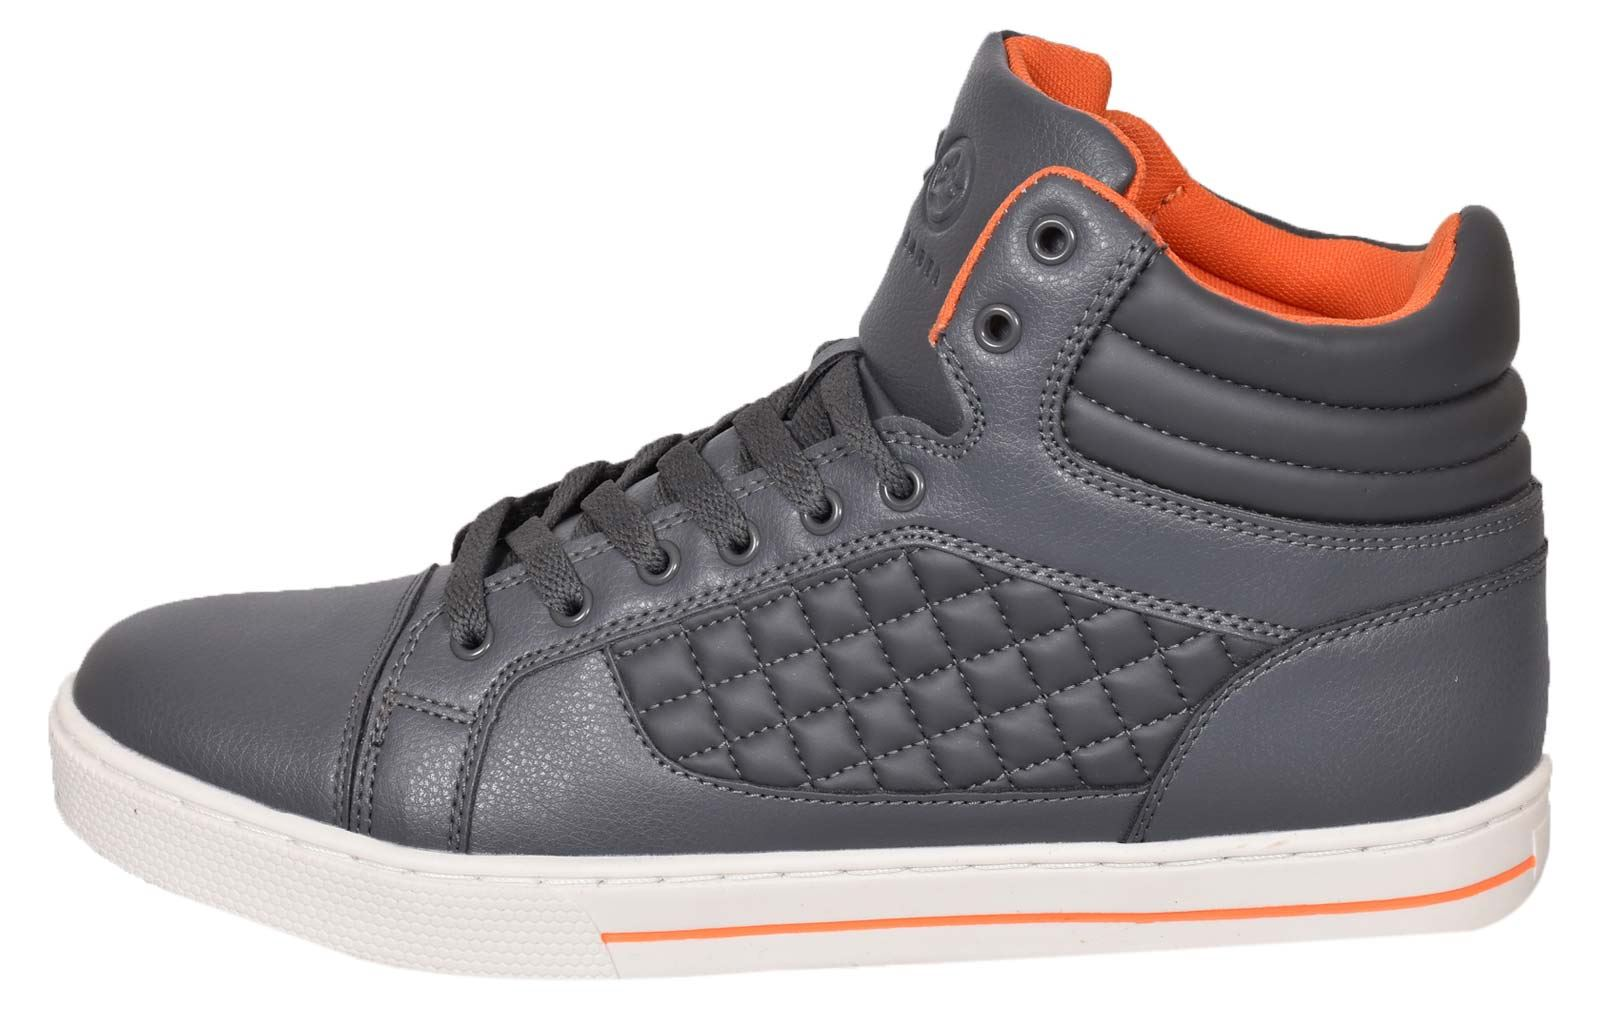 Mens-Trainers-Lace-up-Crosshatch-High-Tops-Ankle-Padded-Shoes-New-UK-Sizes-7-12 thumbnail 12